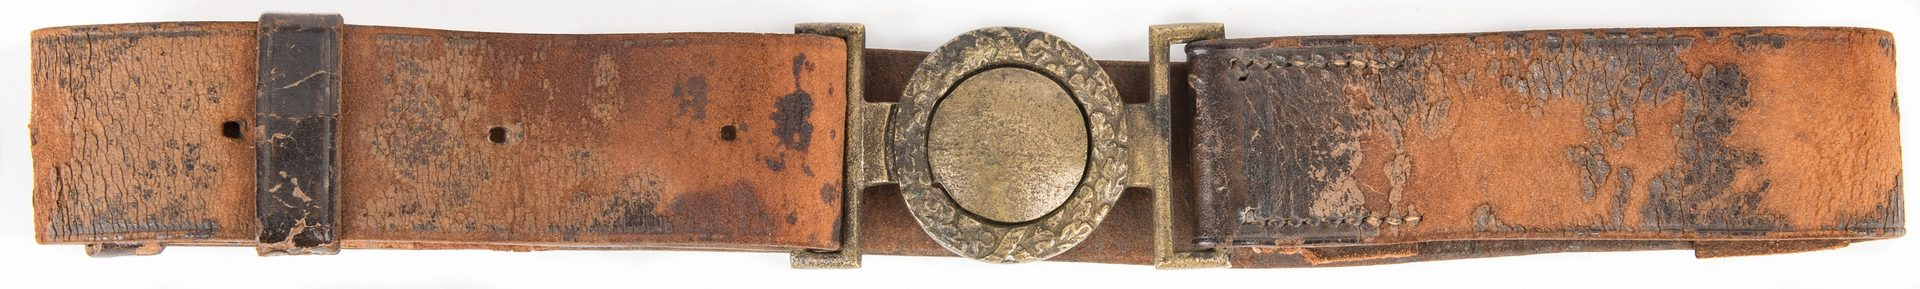 Lot 268: Confederate Leech & Rigdon Waist Plate on Leather Sword Belt